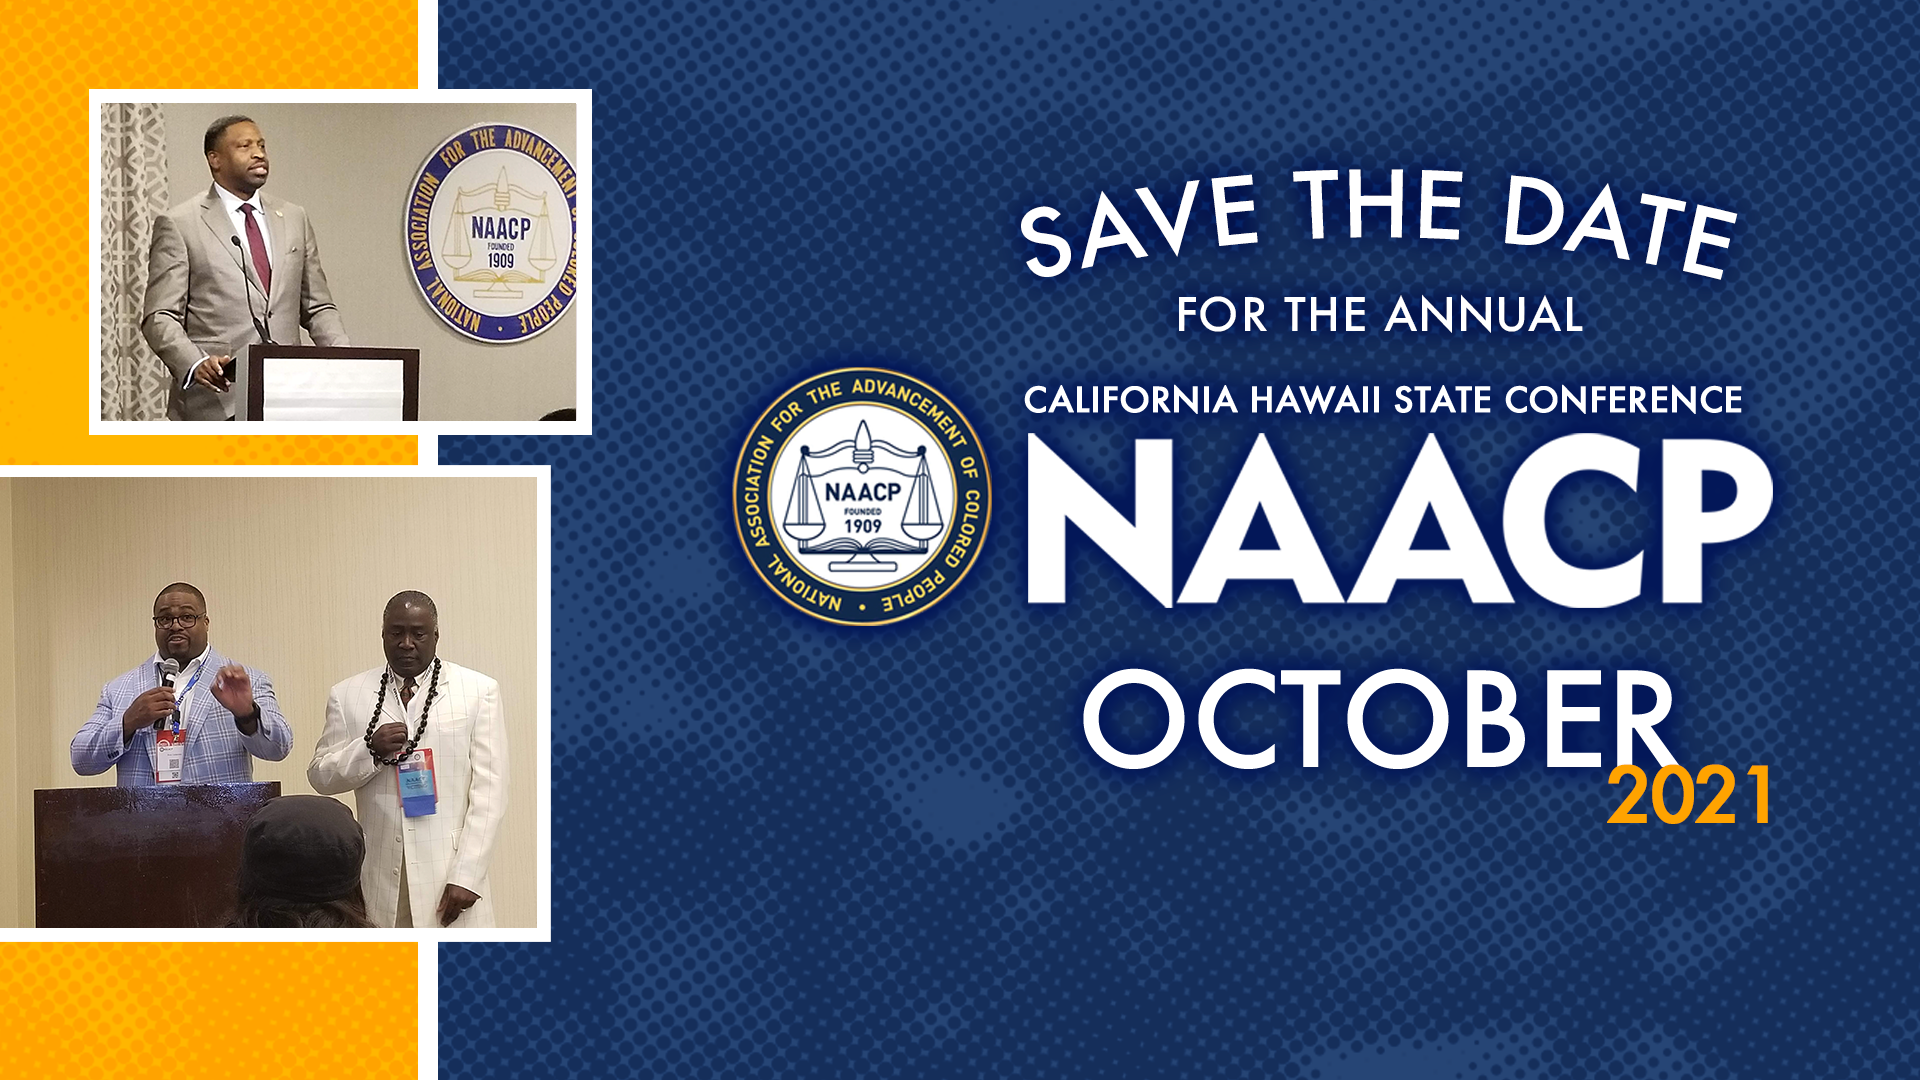 California Hawaii State Conference NAACP, October 2021